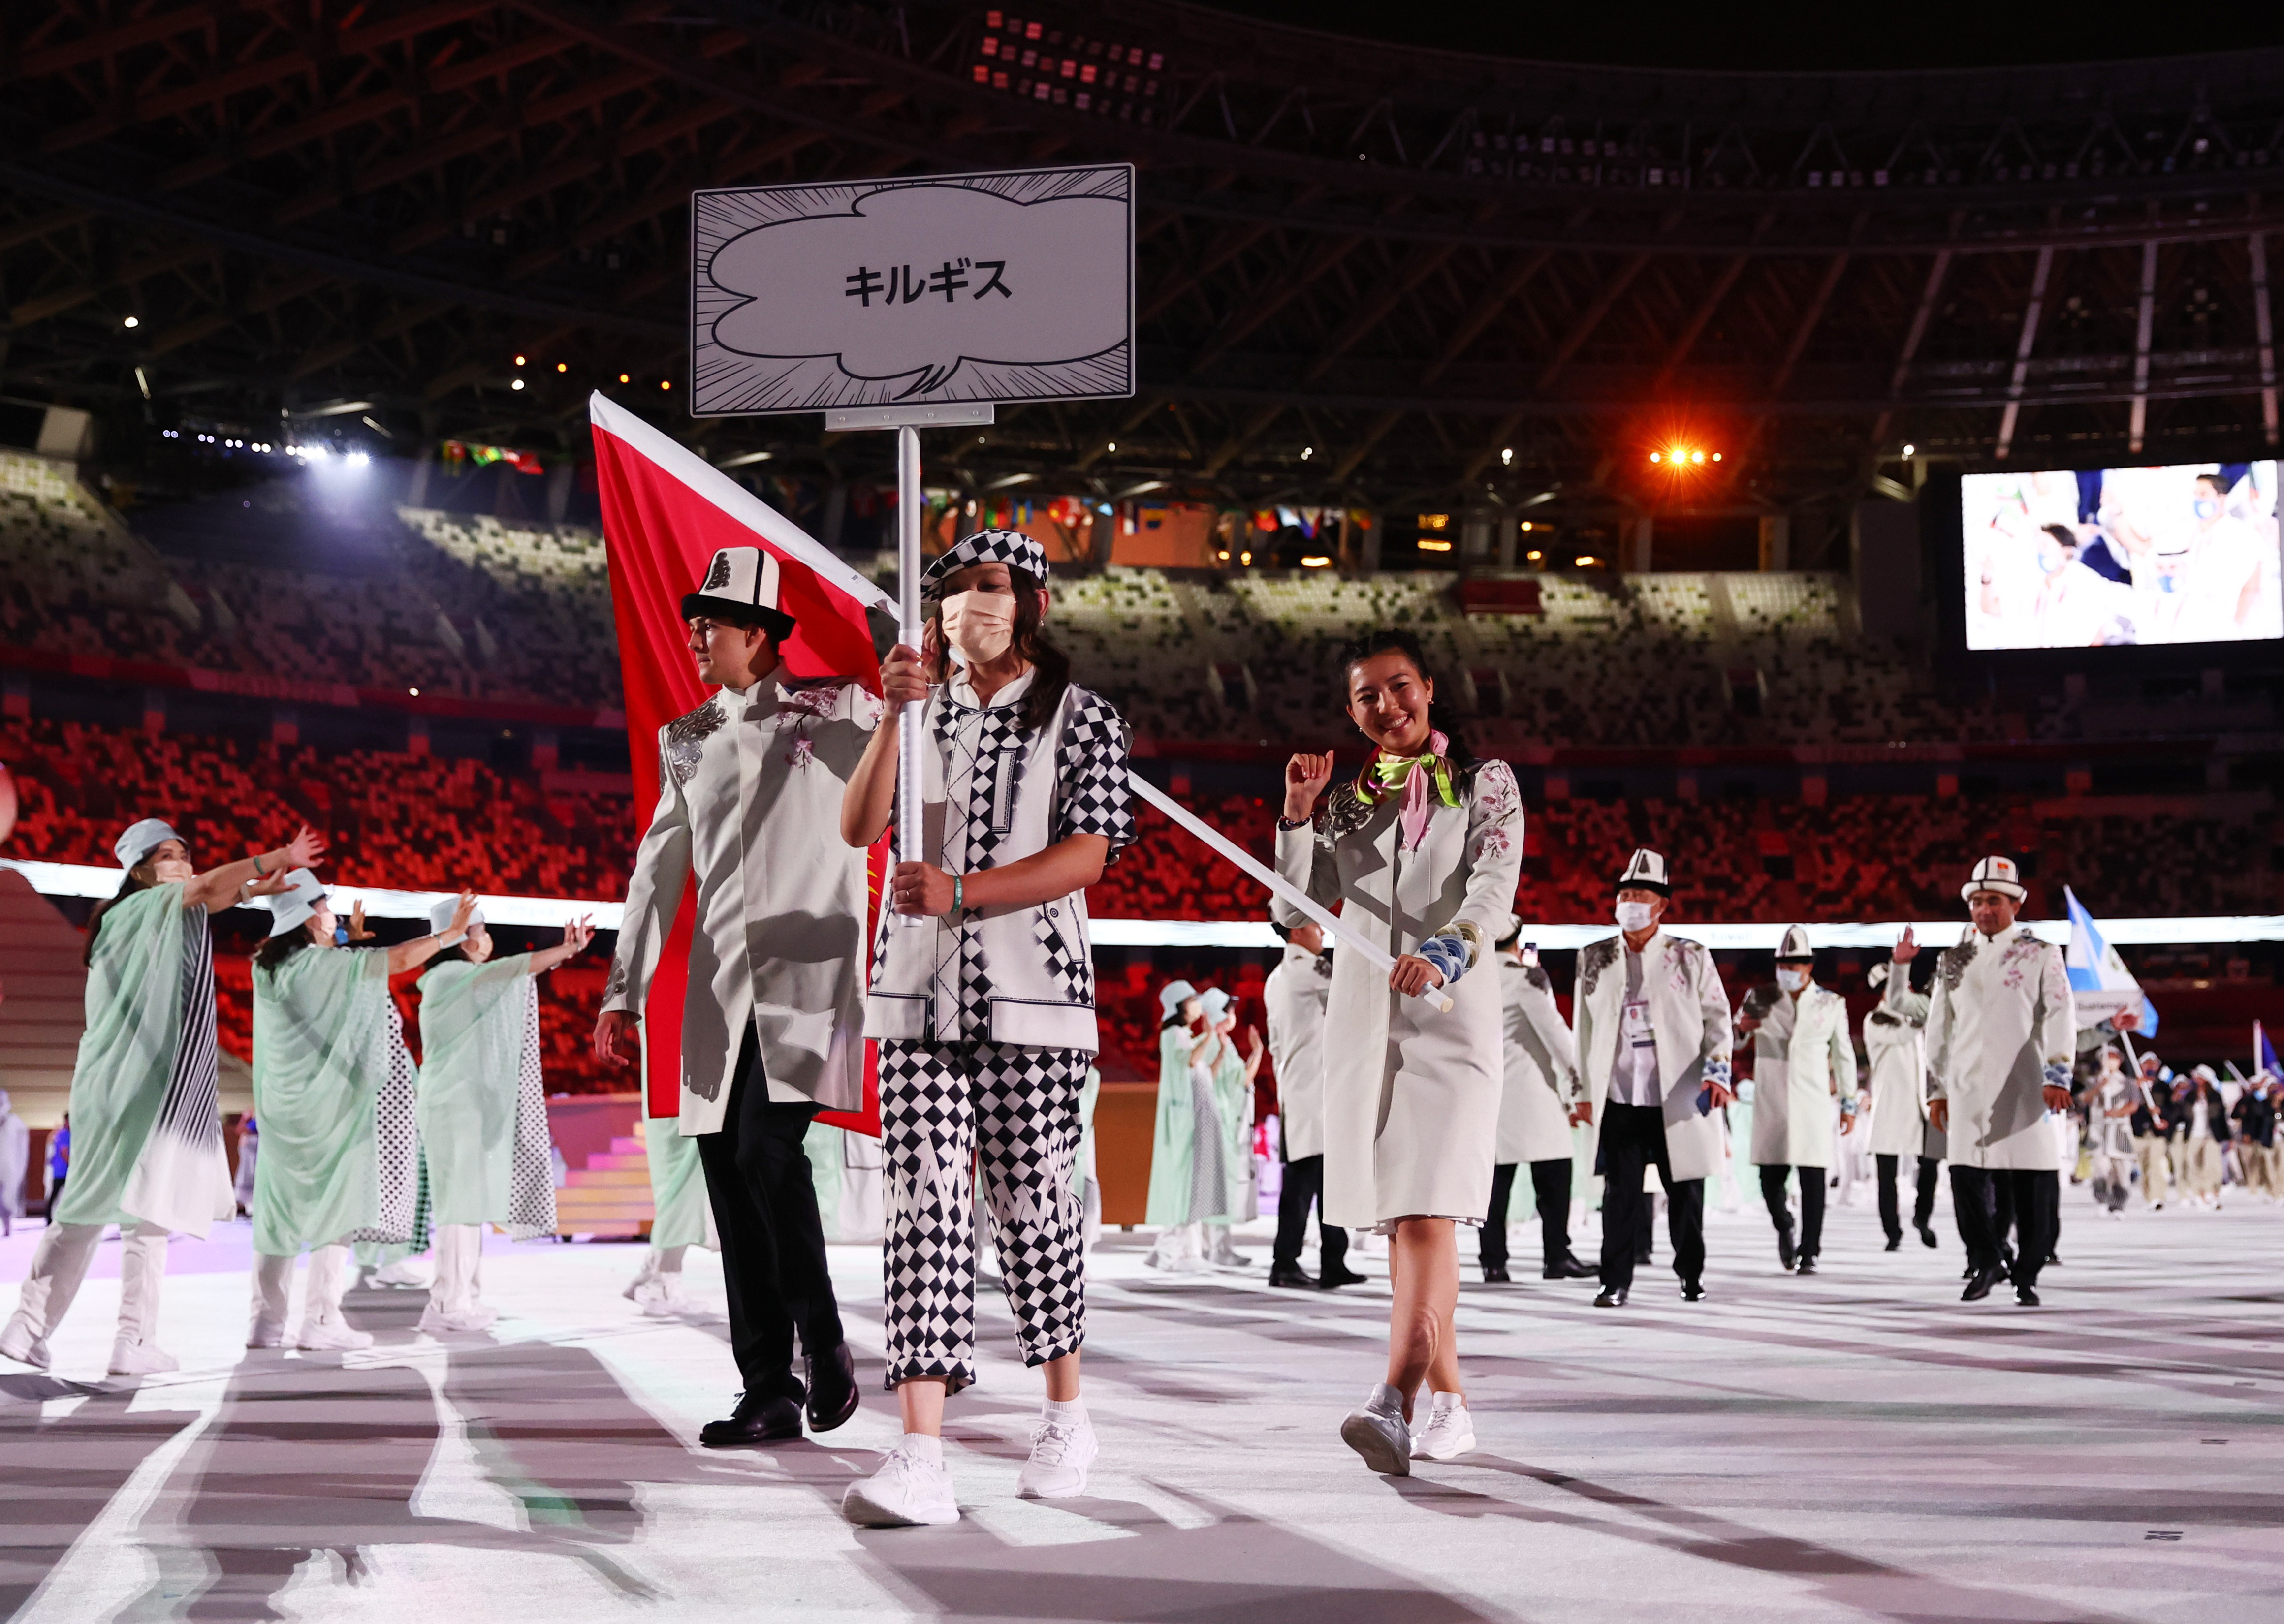 Tokyo 2020 Olympics - The Tokyo 2020 Olympics Opening Ceremony - Olympic Stadium, Tokyo, Japan - July 23, 2021. Flag bearers Kanykei Kubanychbekova of Kyrgyzstan and Denis Petrashov of Kyrgyzstan lead their contingent during the athletes' parade at the opening ceremony REUTERS/Kai Pfaffenbach